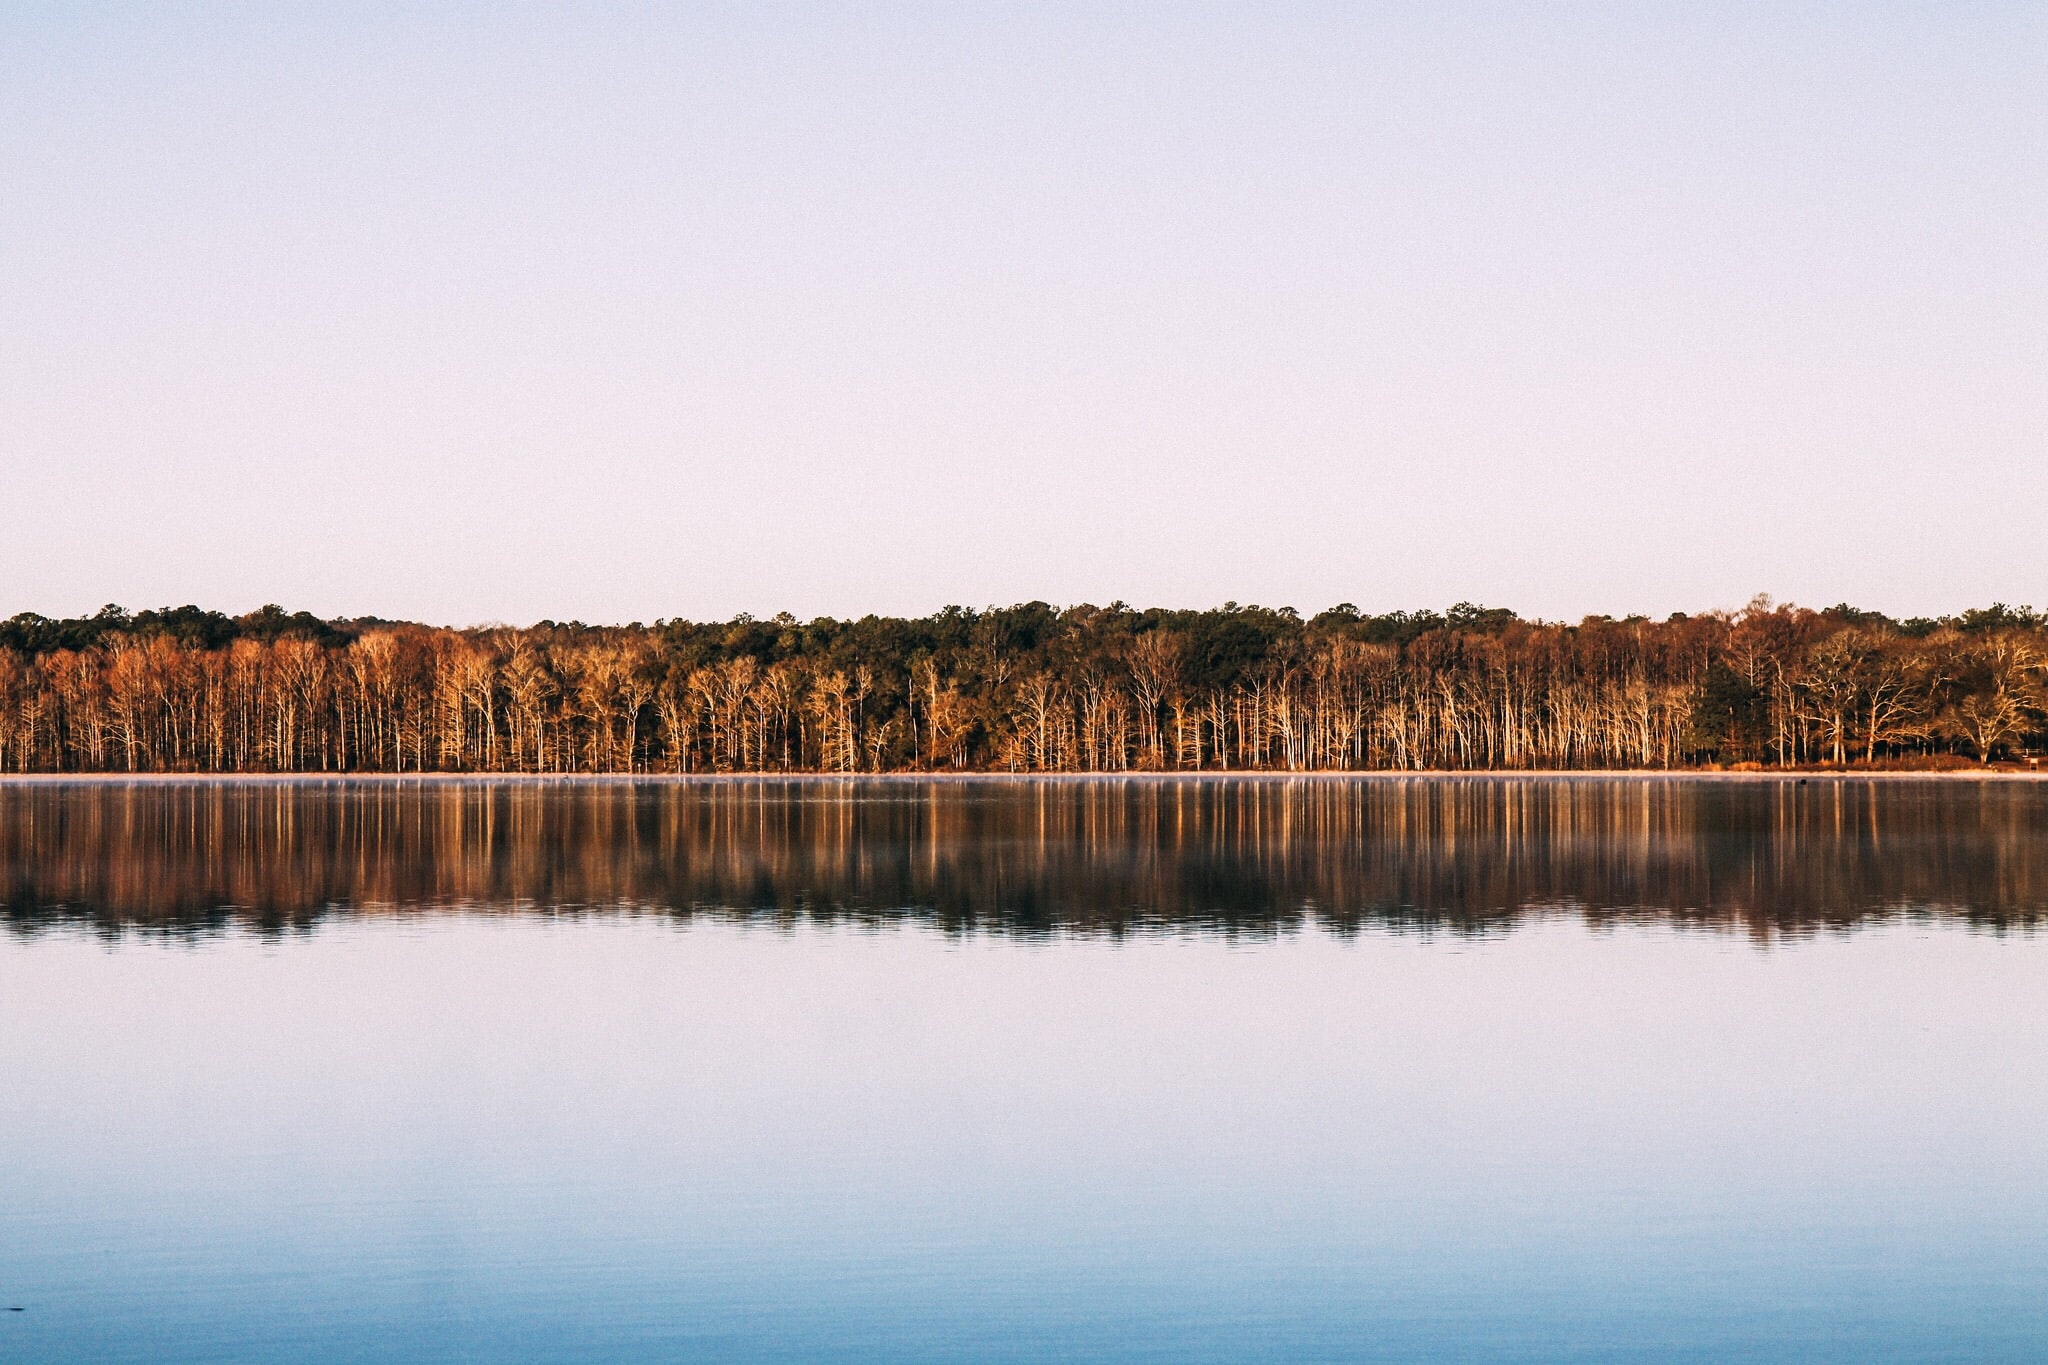 photo of a body of water